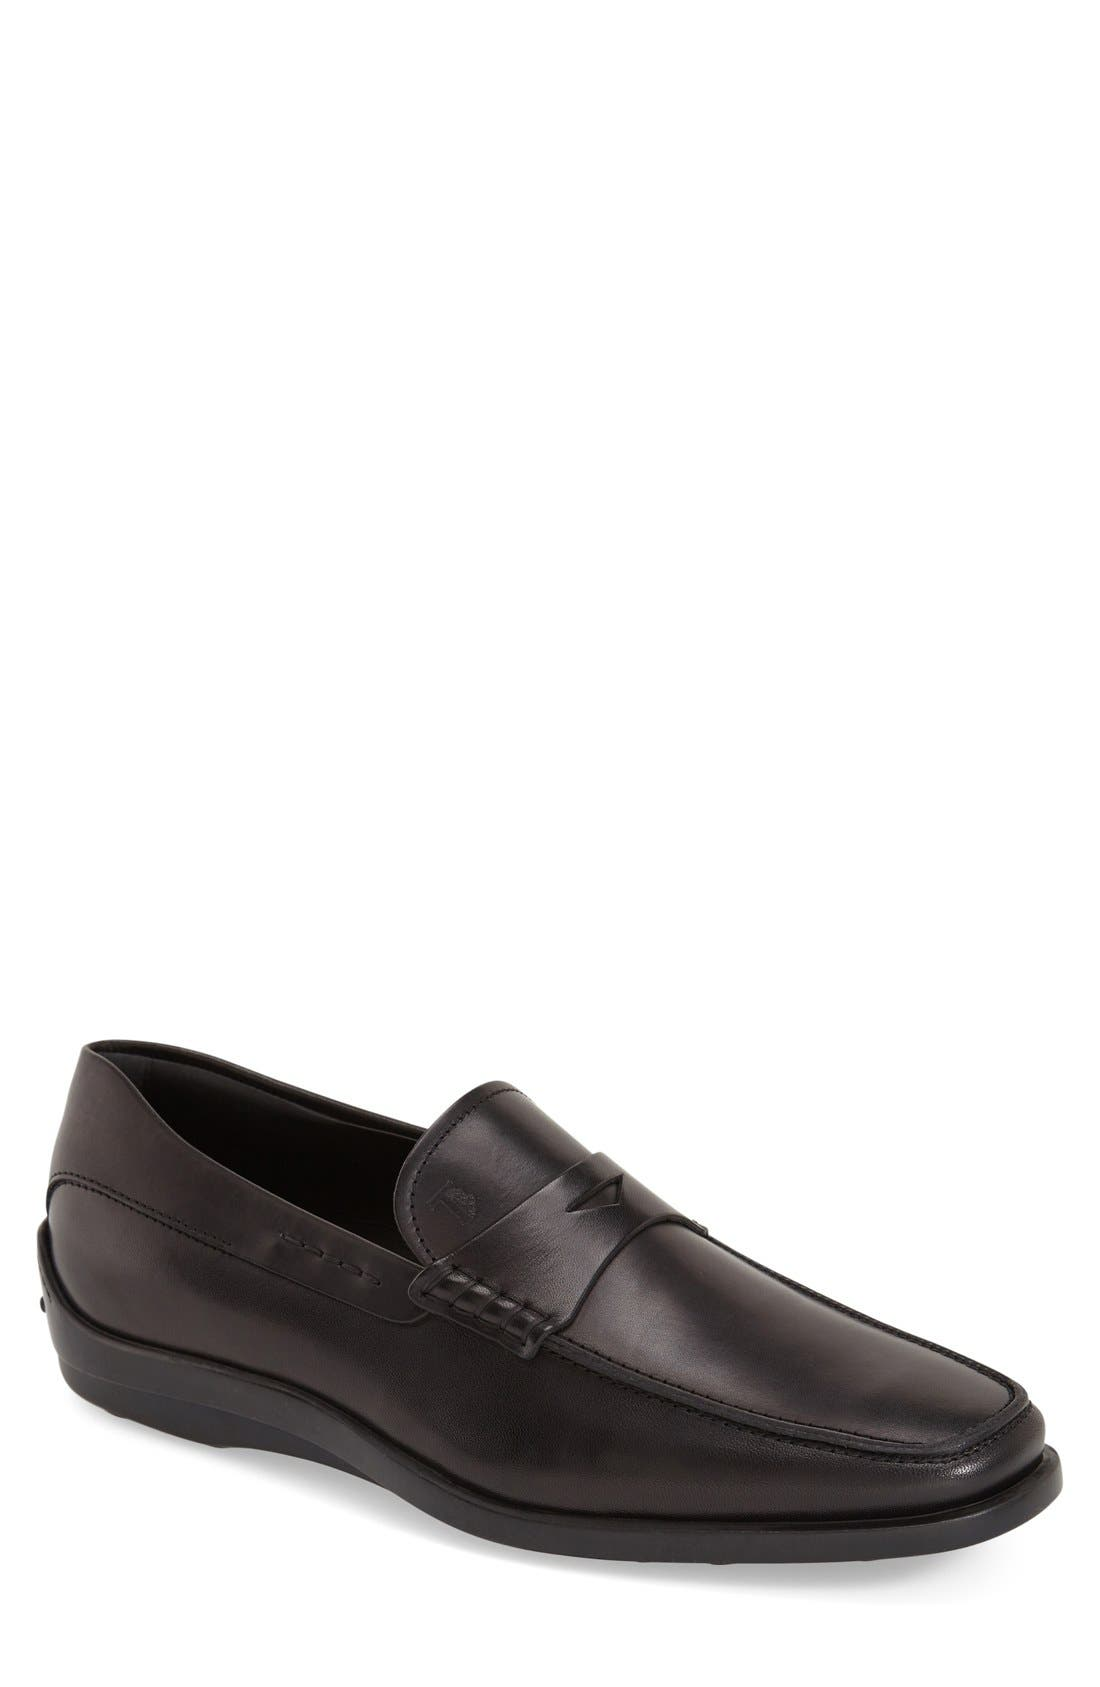 Main Image - Tod's 'Quinn' Penny Loafer